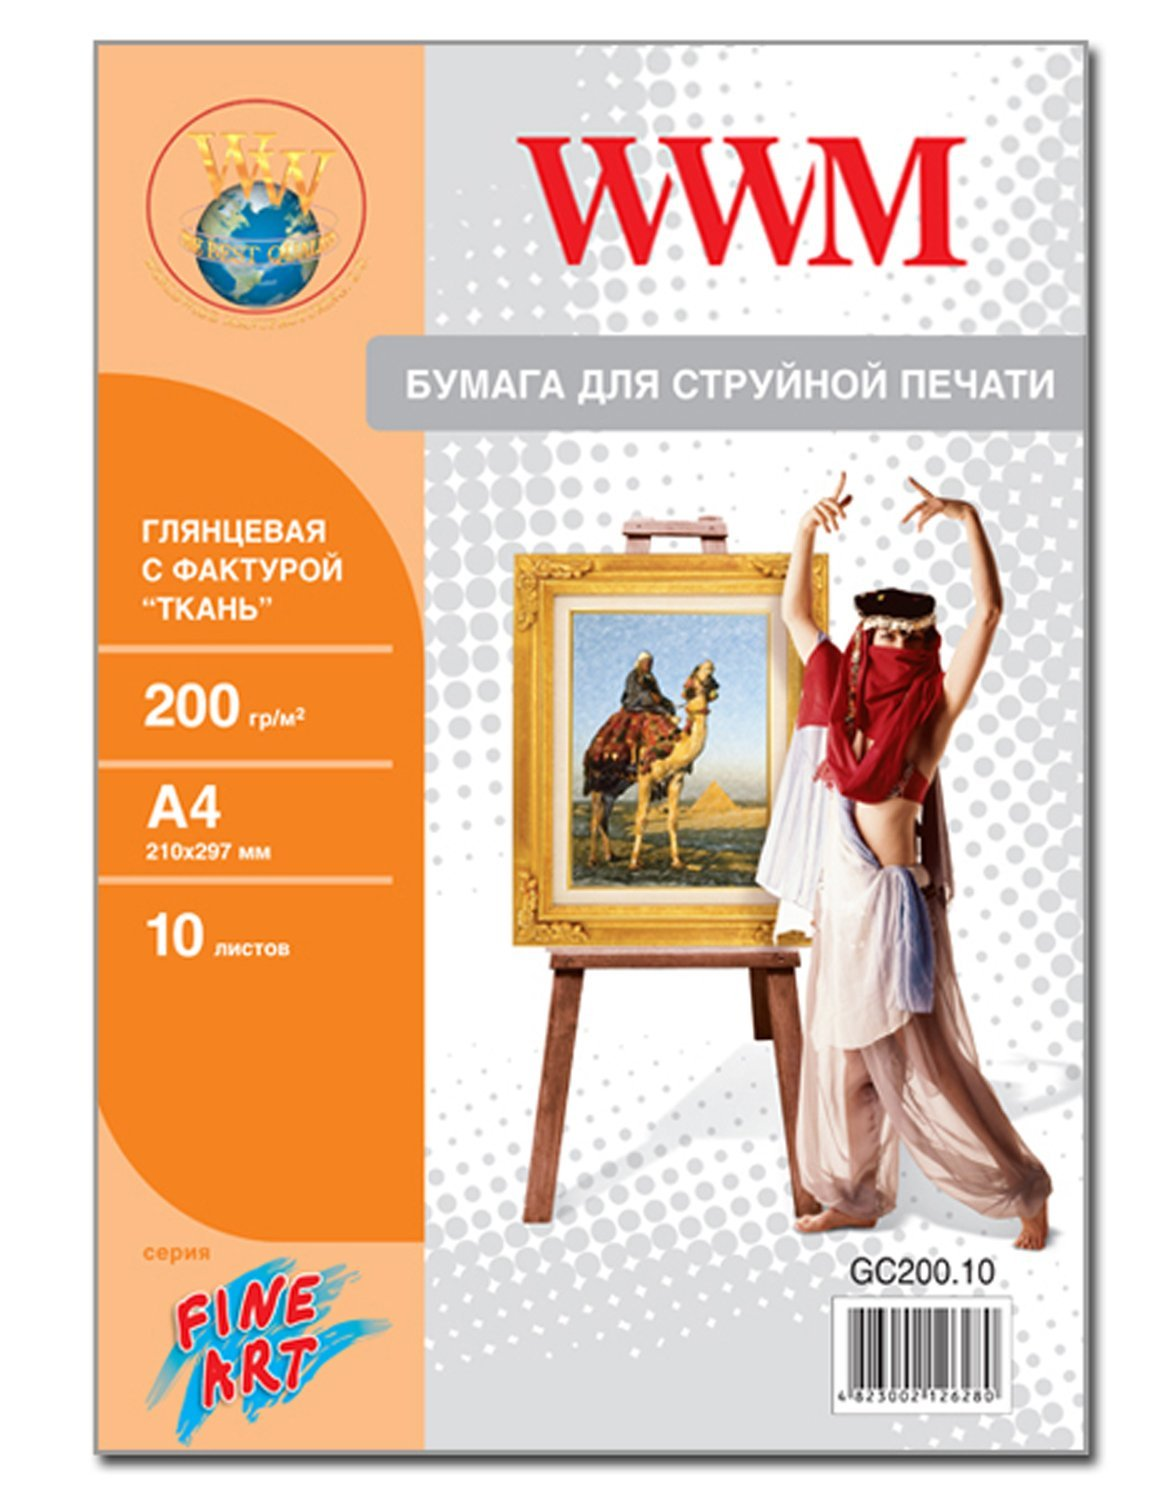 """Photo Paper Gloss, Glossy WWM """"Fabric"""", 11,7 x 8,3 Inches, 200gsm, 10 Sheets (GC200.10); High Quality, For Any Desktop Inkjet Printers, Excellent White Inkjet Printer Photo Paper for Printing Color Images, Gloss Coated, Pack of 10, 200gsm, Whiteness 96%, Brightness 108% on 457nm, Size 11,7x8,3"""